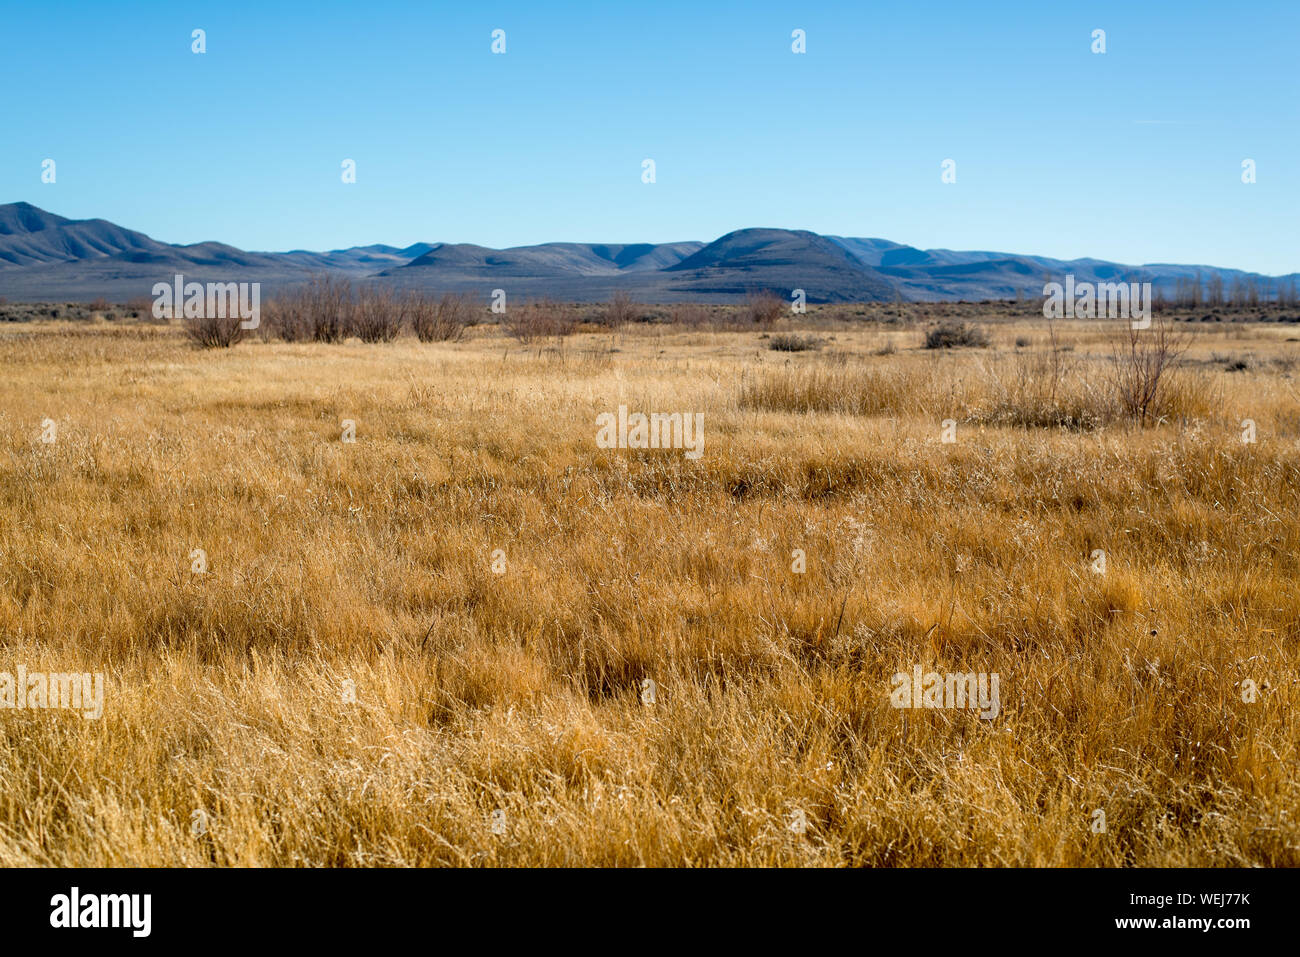 USA, Nevada, Churchill County, Stillwater National Wildlife Refuge. A field of golden grasses covering this seasonally inundated wetland. Stock Photo